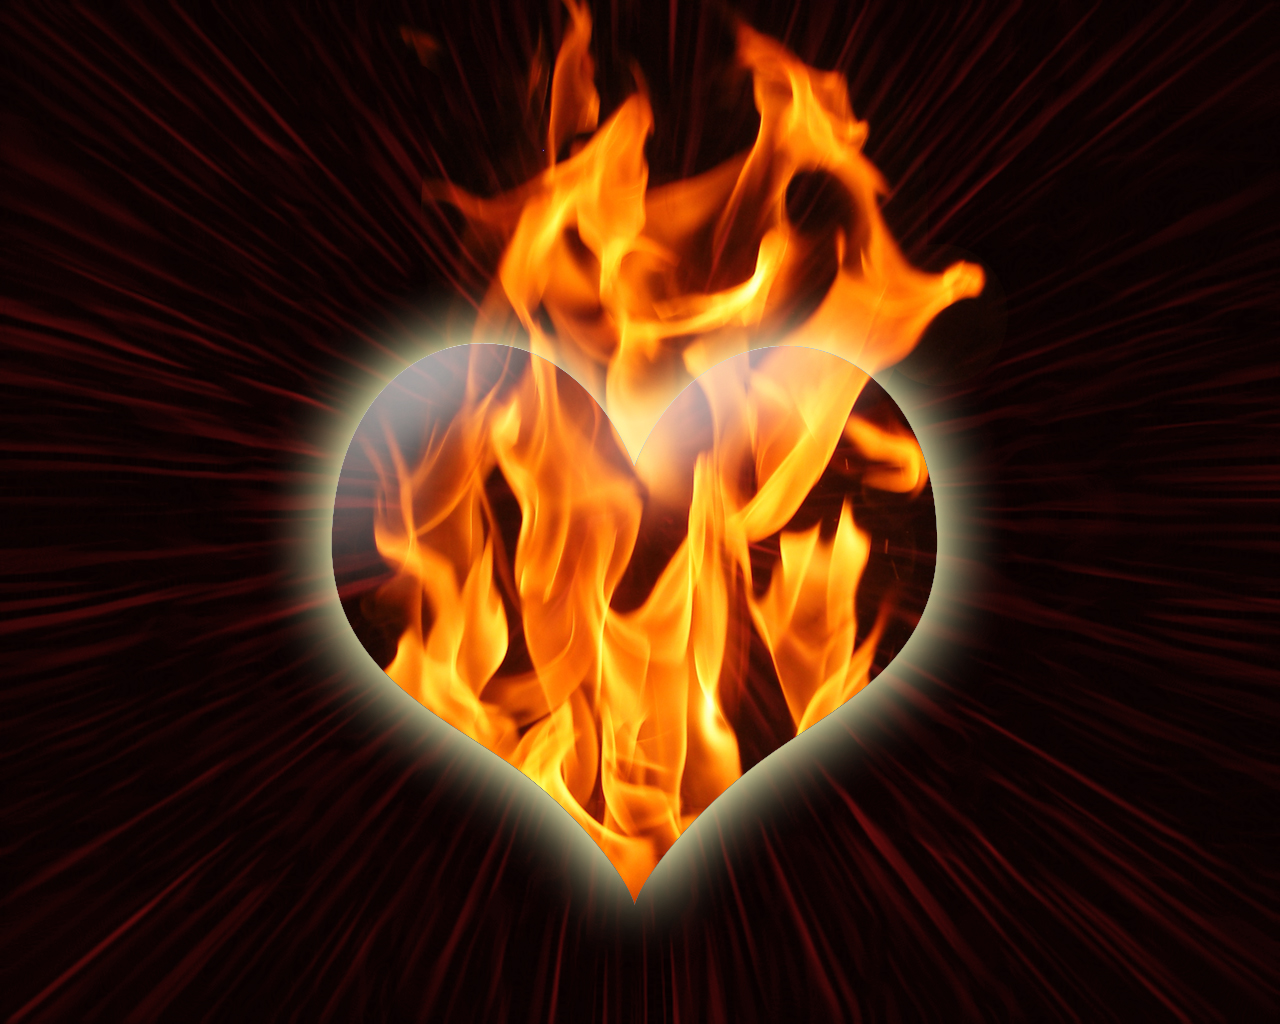 Fire heart Wallpapers - 500 Collection HD Wallpaper